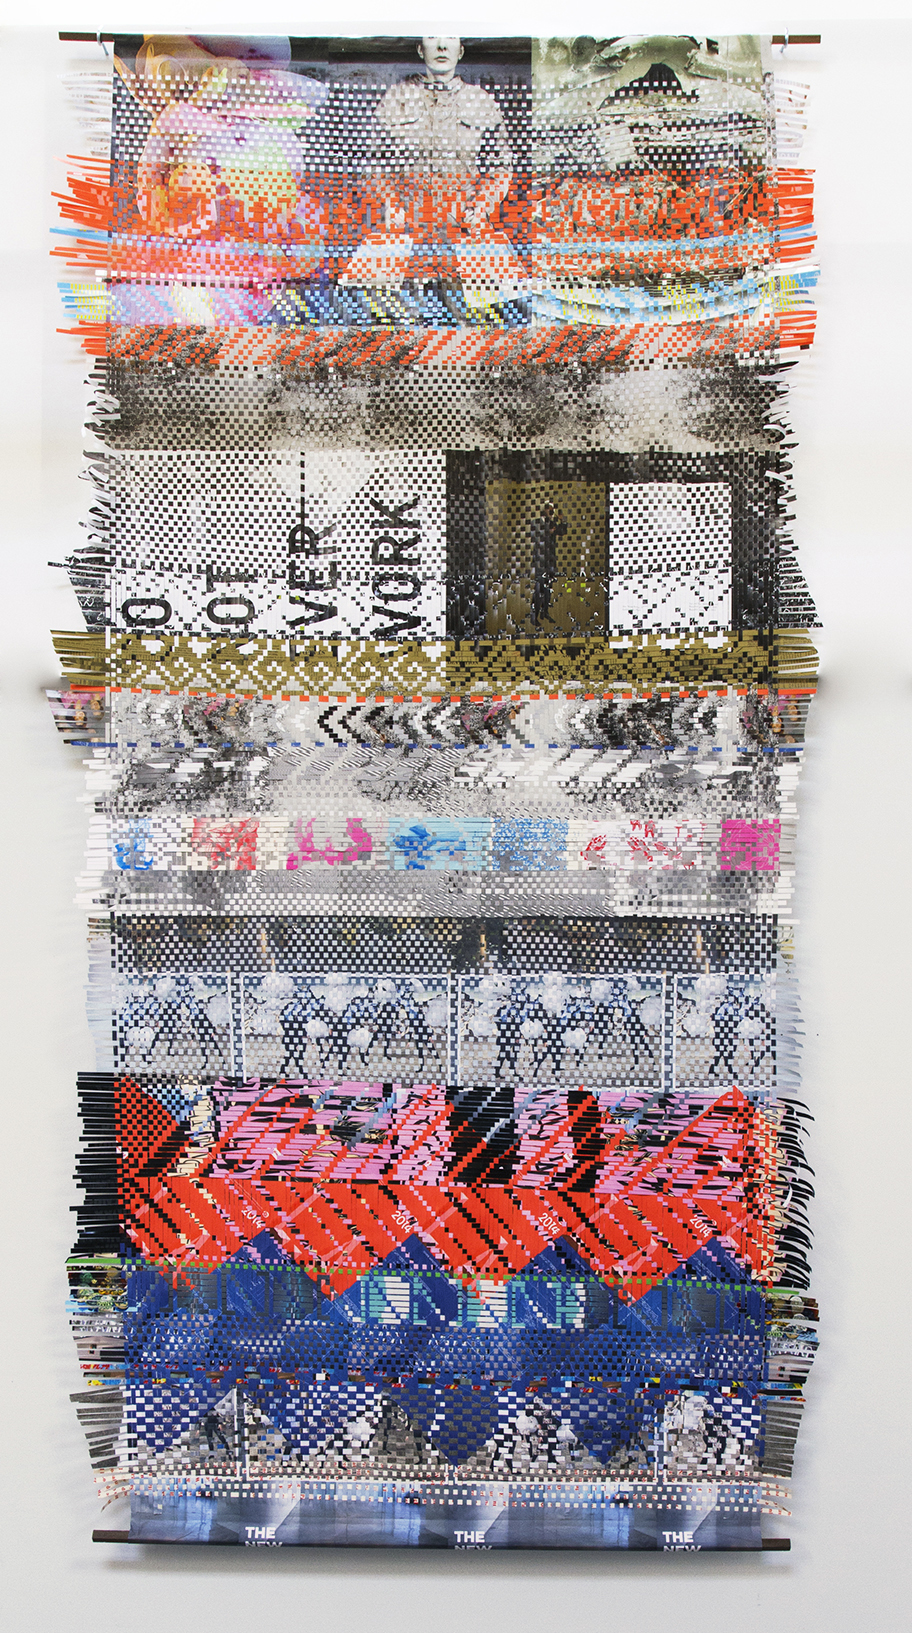 Tall Weaving, 2016, woven paper ephemera from art exhibitions, 119 x 60